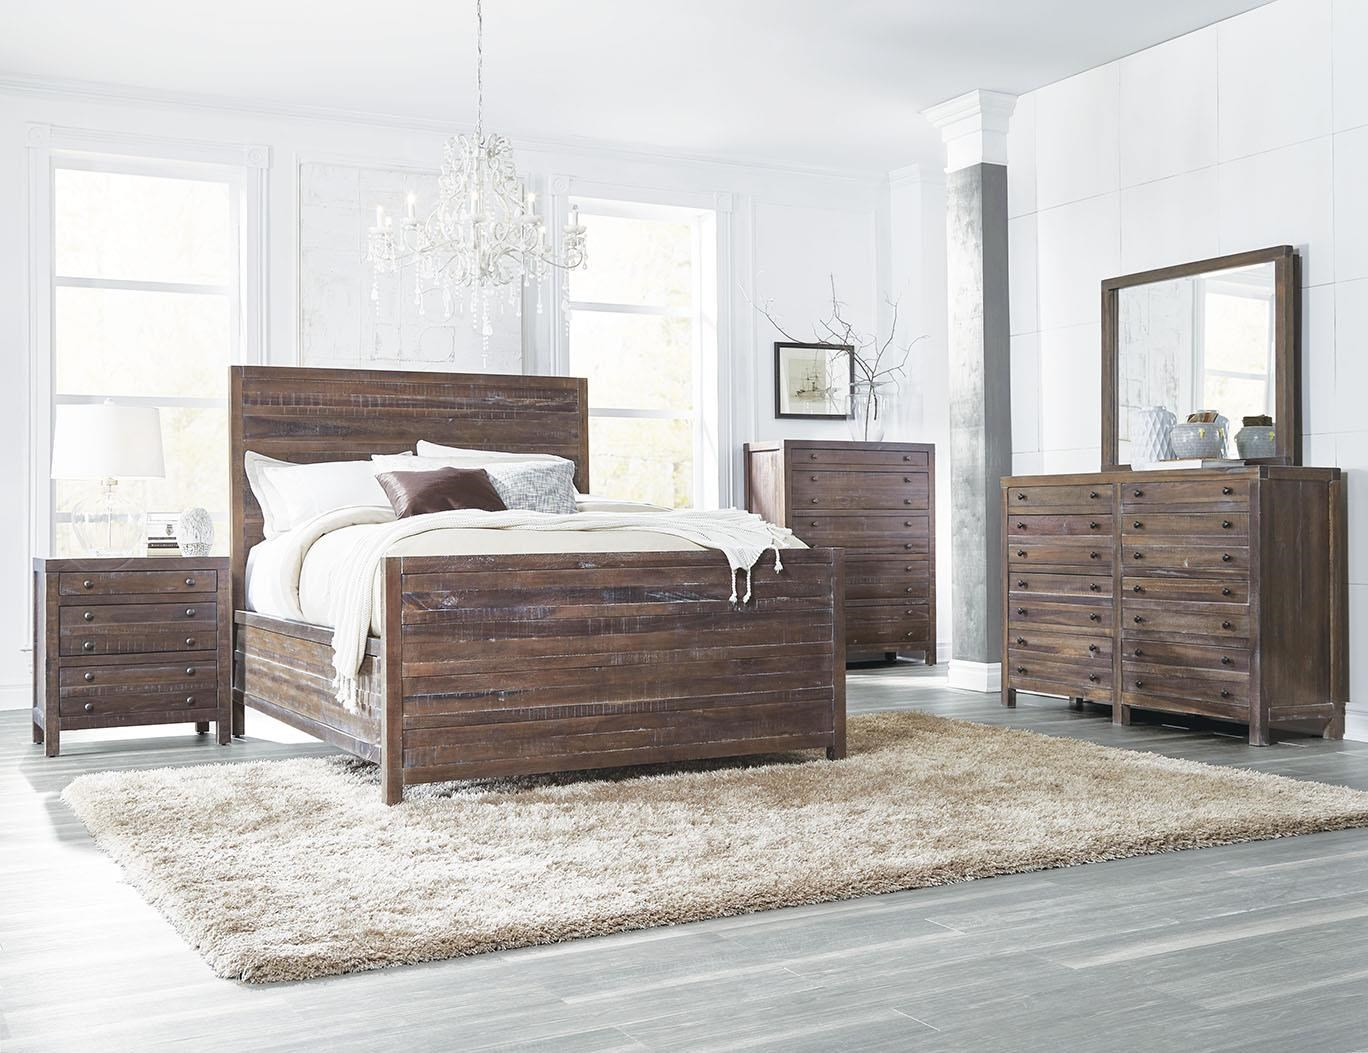 Queen 4-Piece Bedroom Set